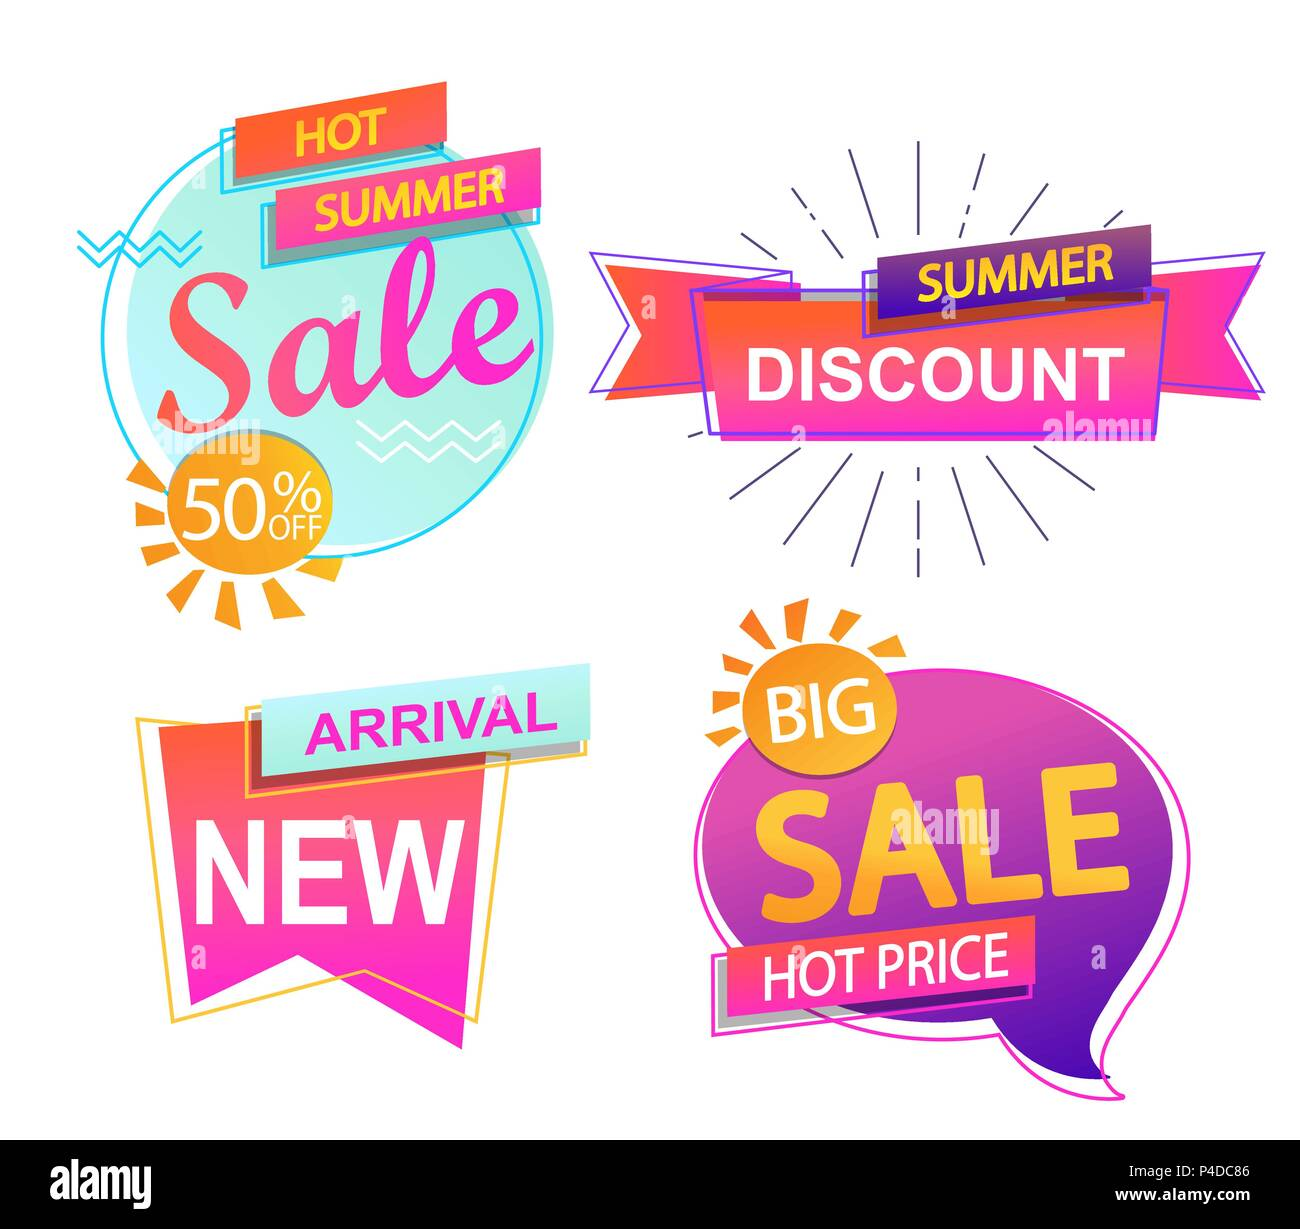 Set of 4 banner elements, sale and discount tag collection, hot summer special offer. Modern website stickers. Vector illustration. - Stock Image